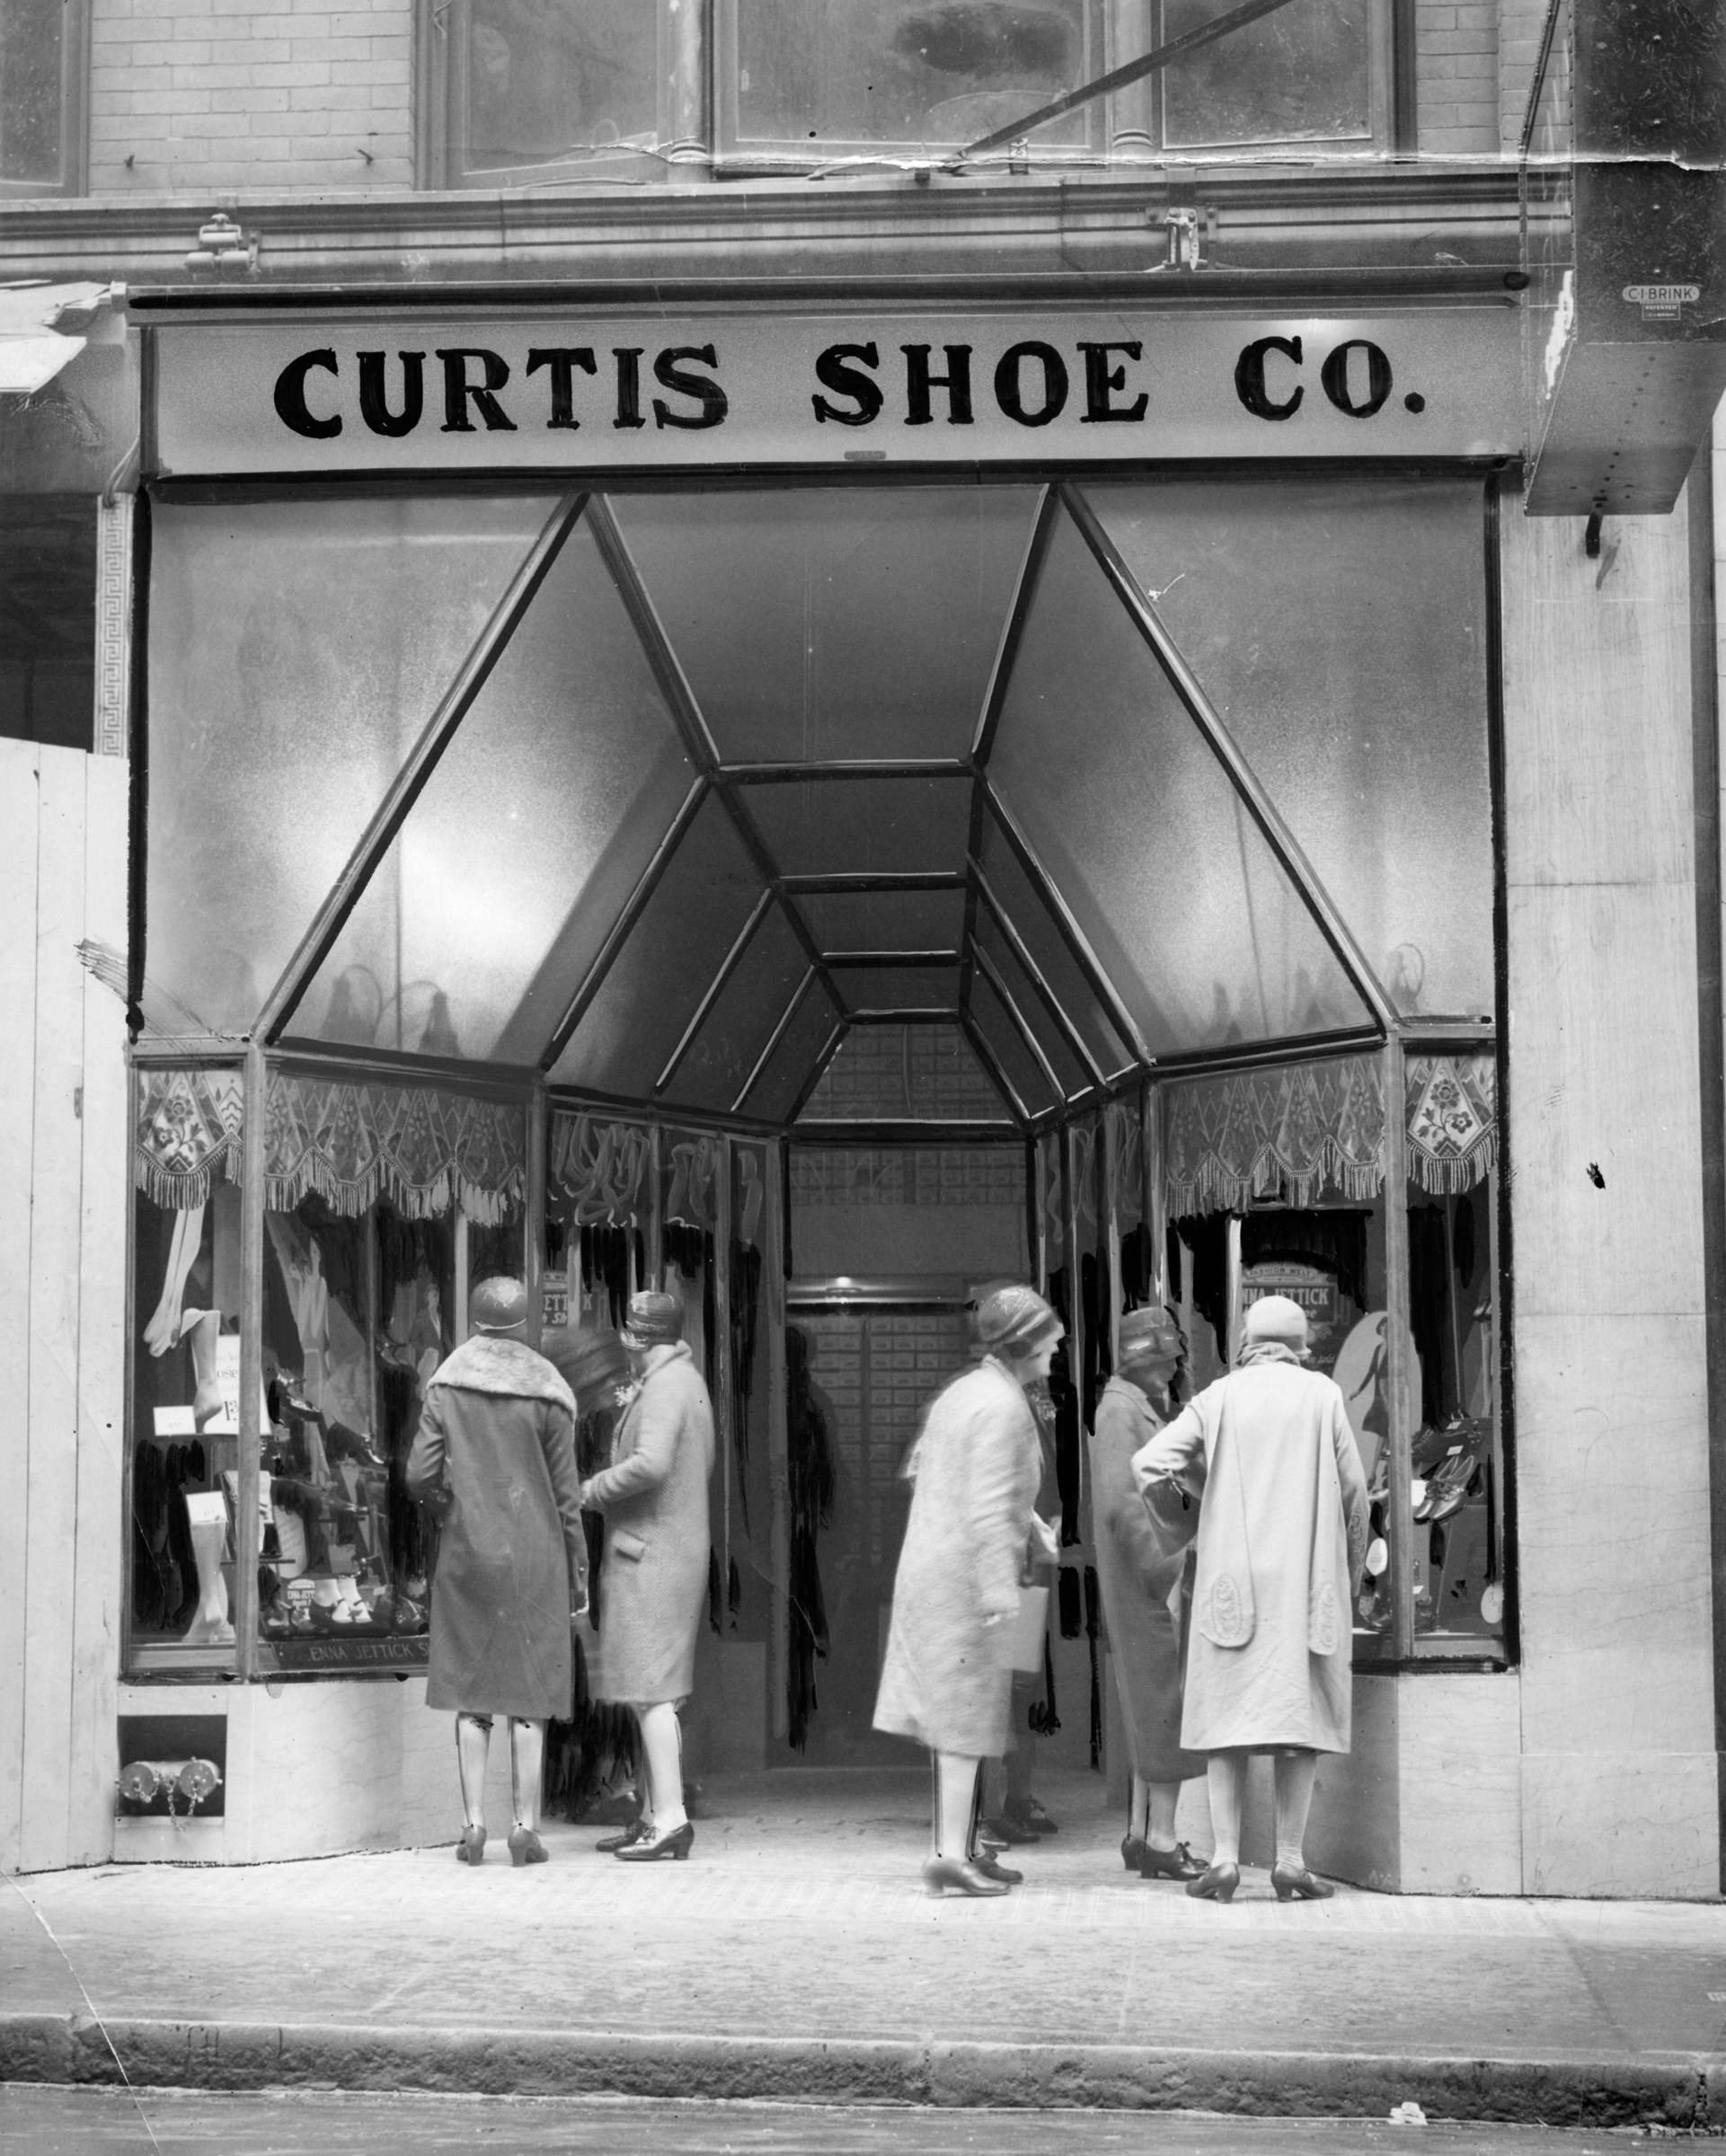 Curtis Shoe Co.